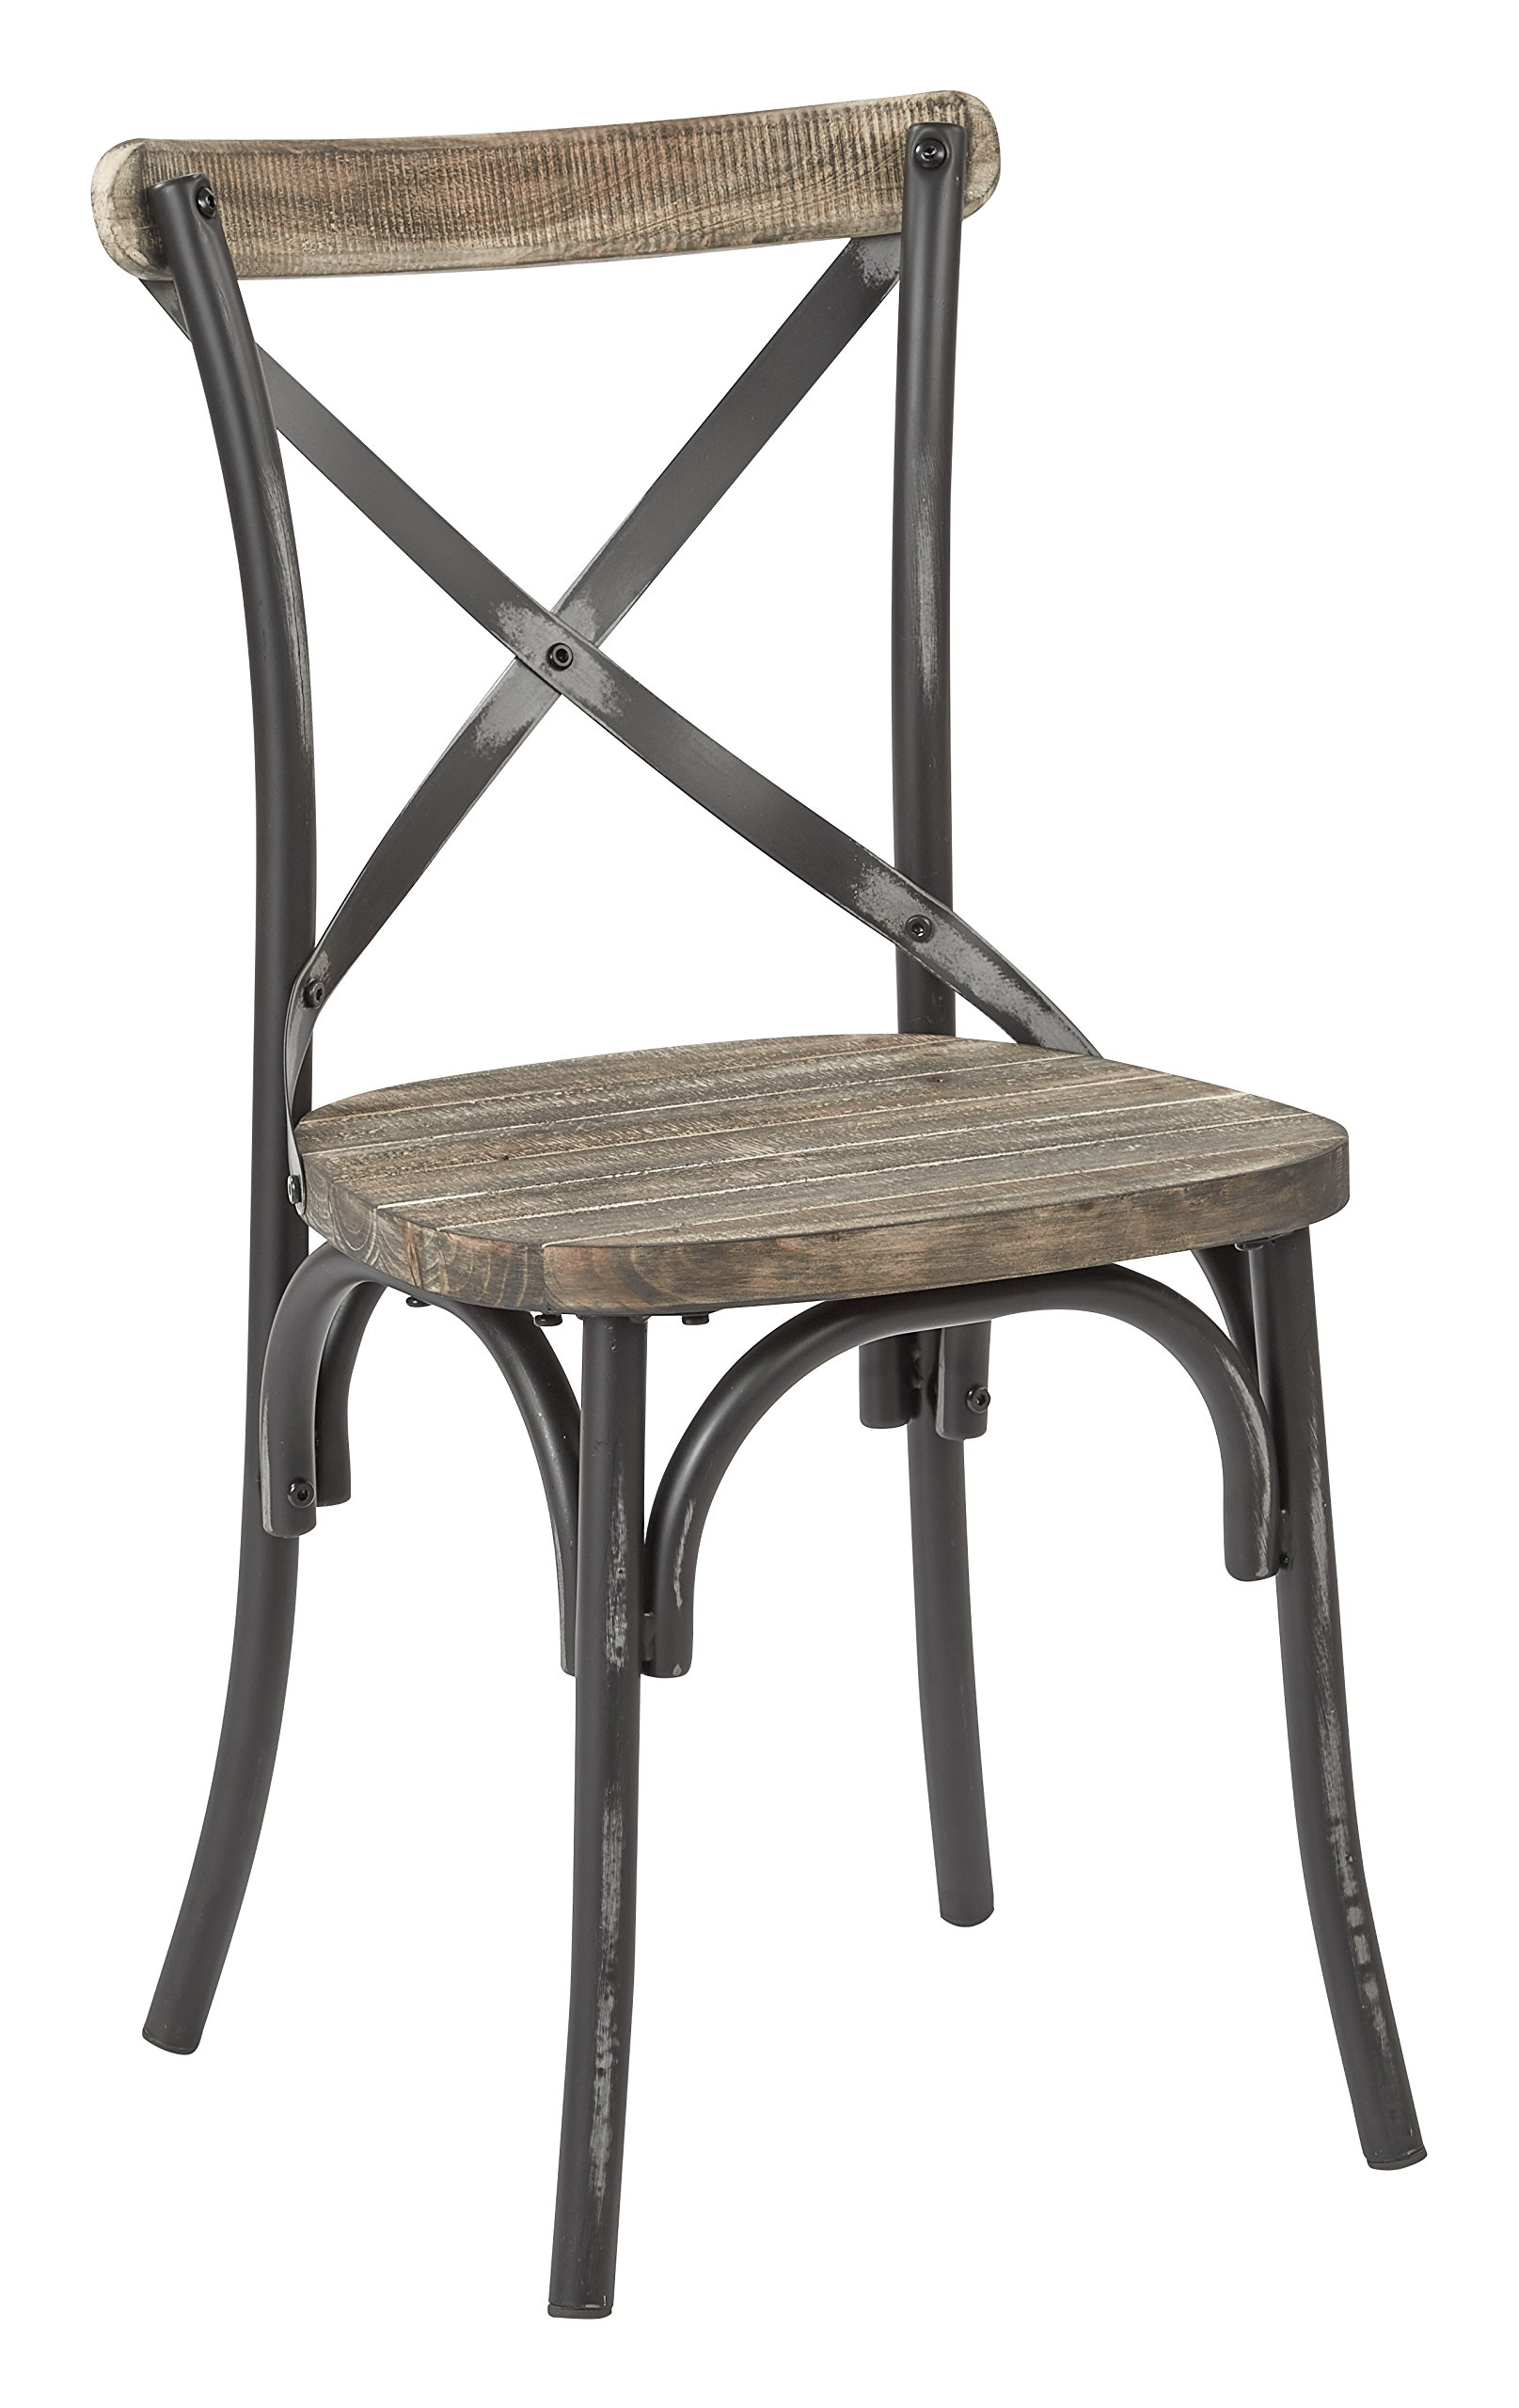 Office Star Somerset X-Back Metal Chair with Hardwood Rustic Walnut Seat Finish, Antique Black